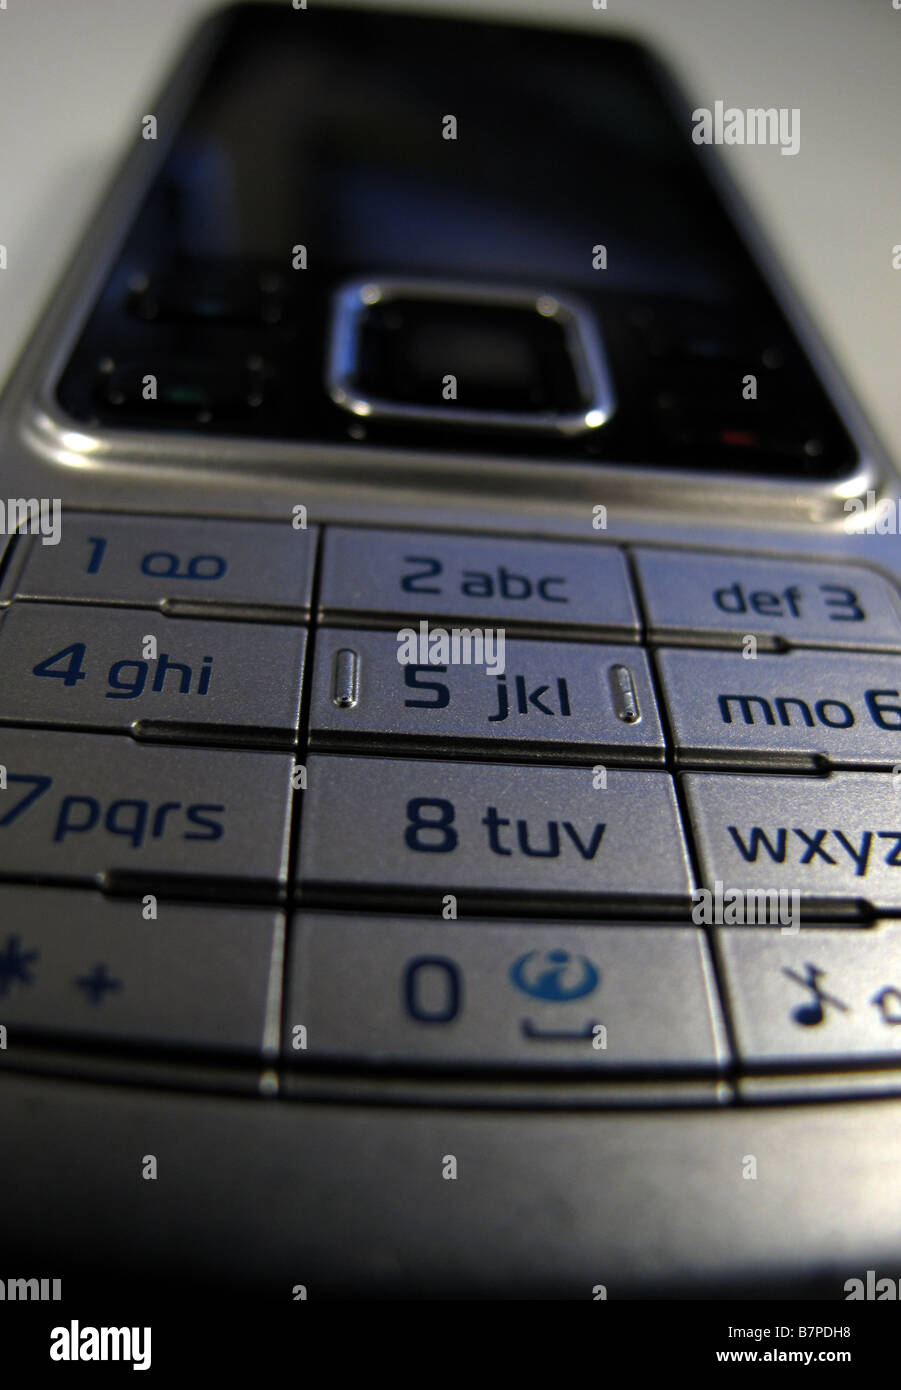 A silver Nokia mobile or cell phone is photographed on a desk in an office in central London - Stock Image